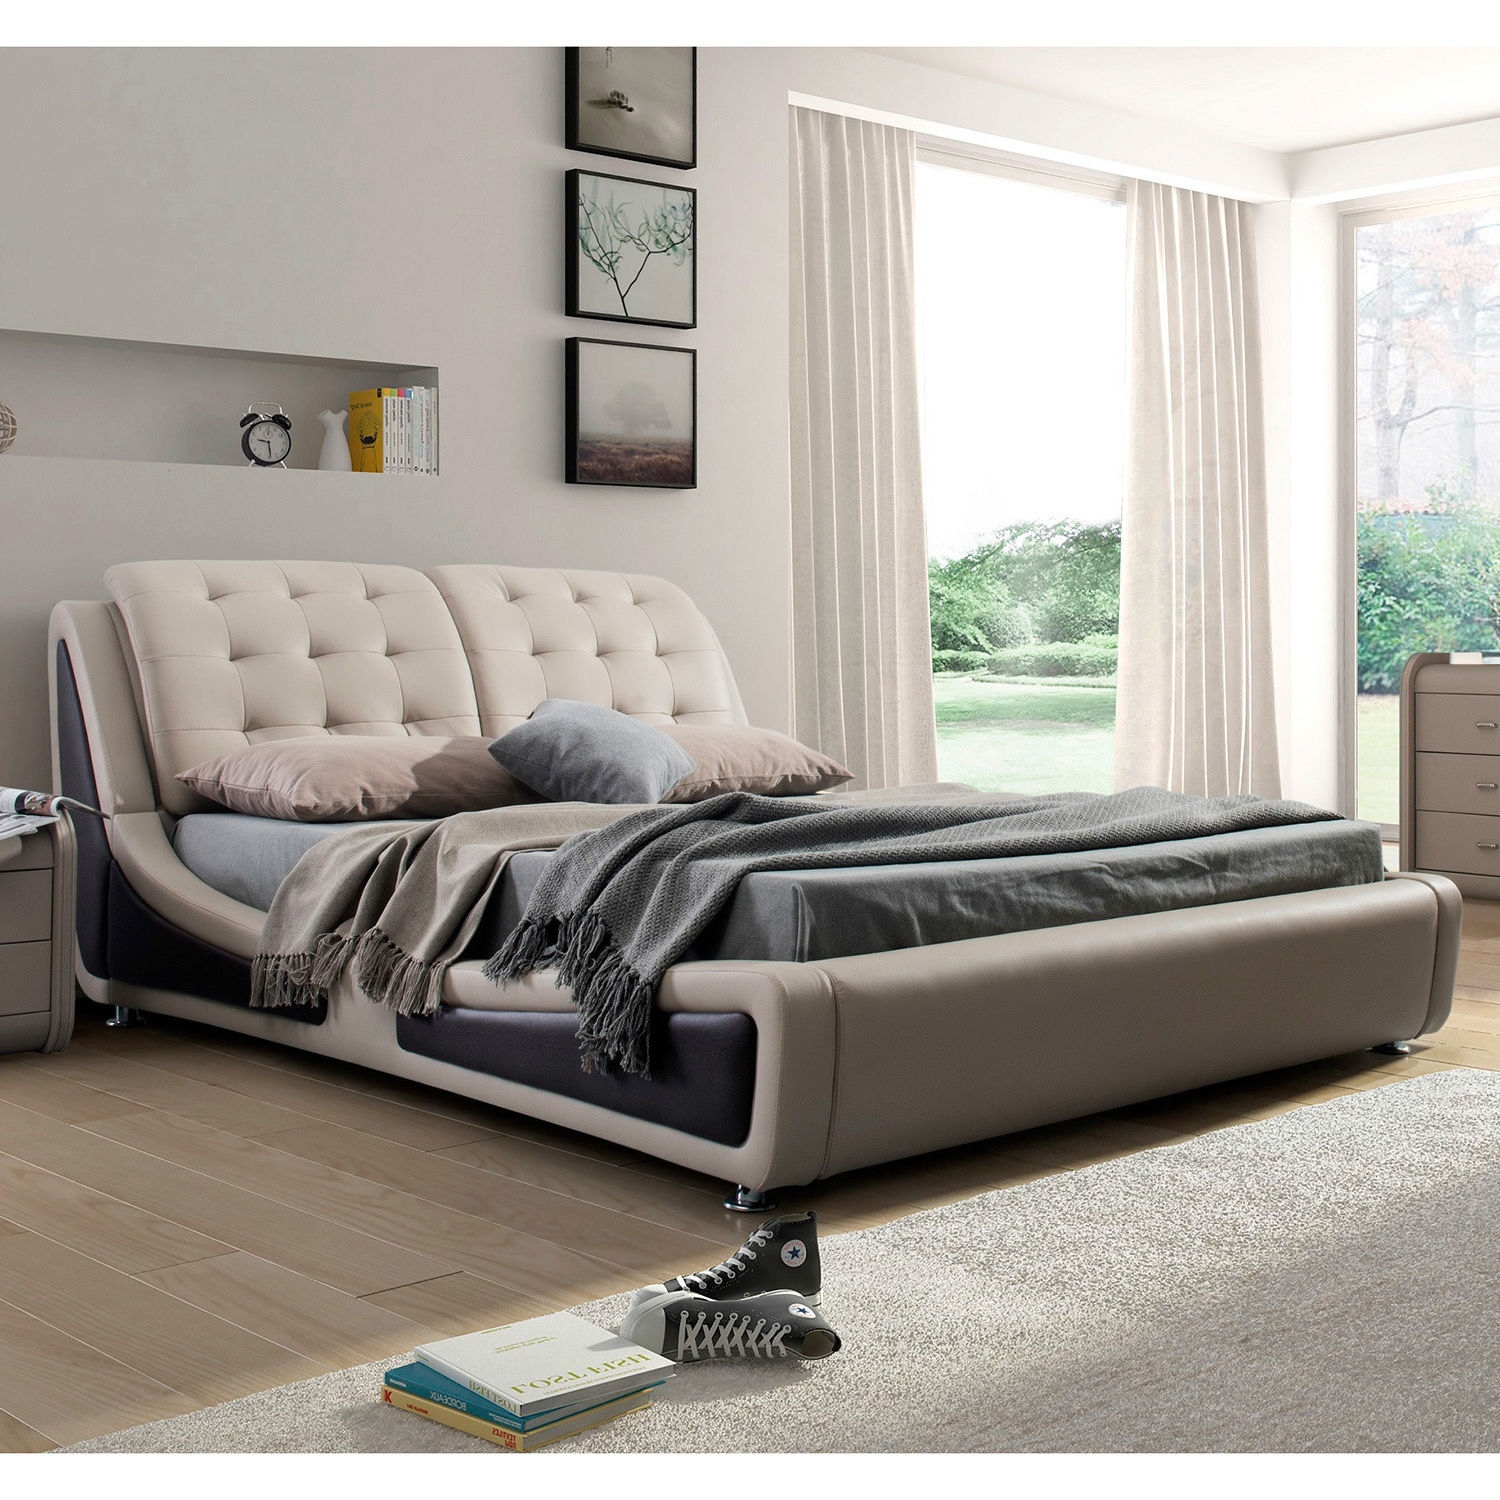 California King Size Light Brown Tan Faux Leather Upholstered Bed With Headboard Fastfurnishings Com